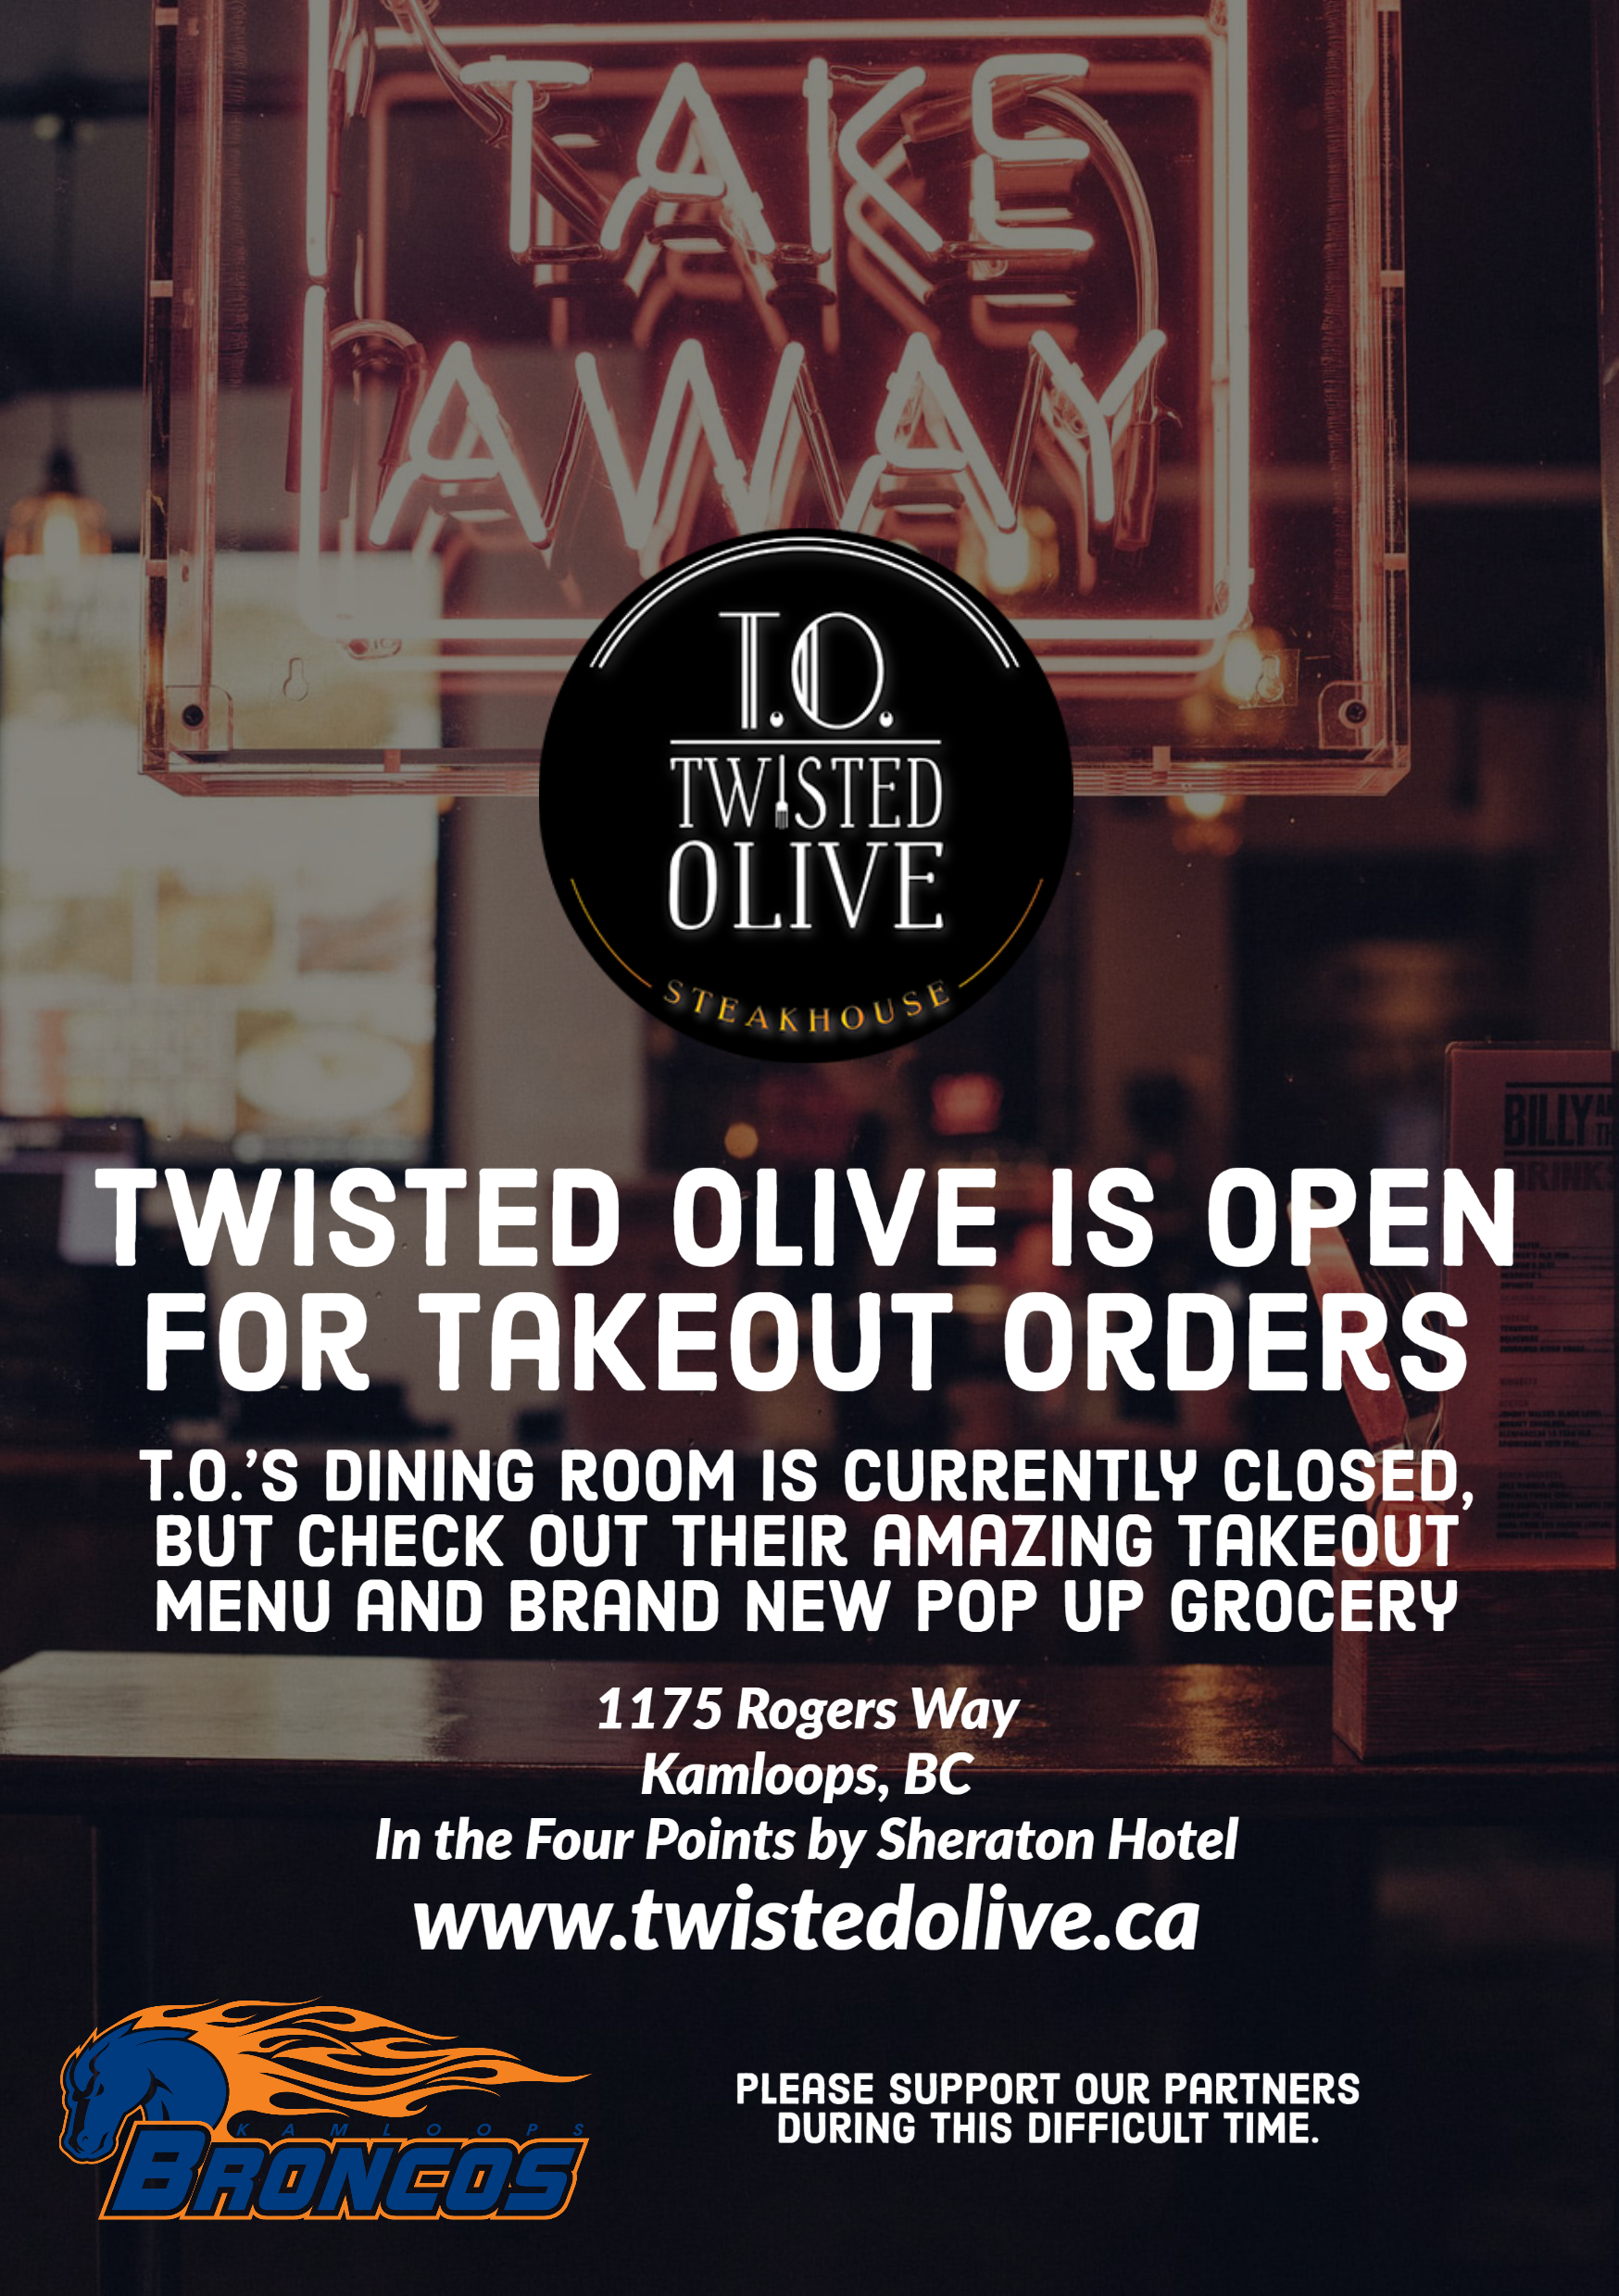 twisted olive ad